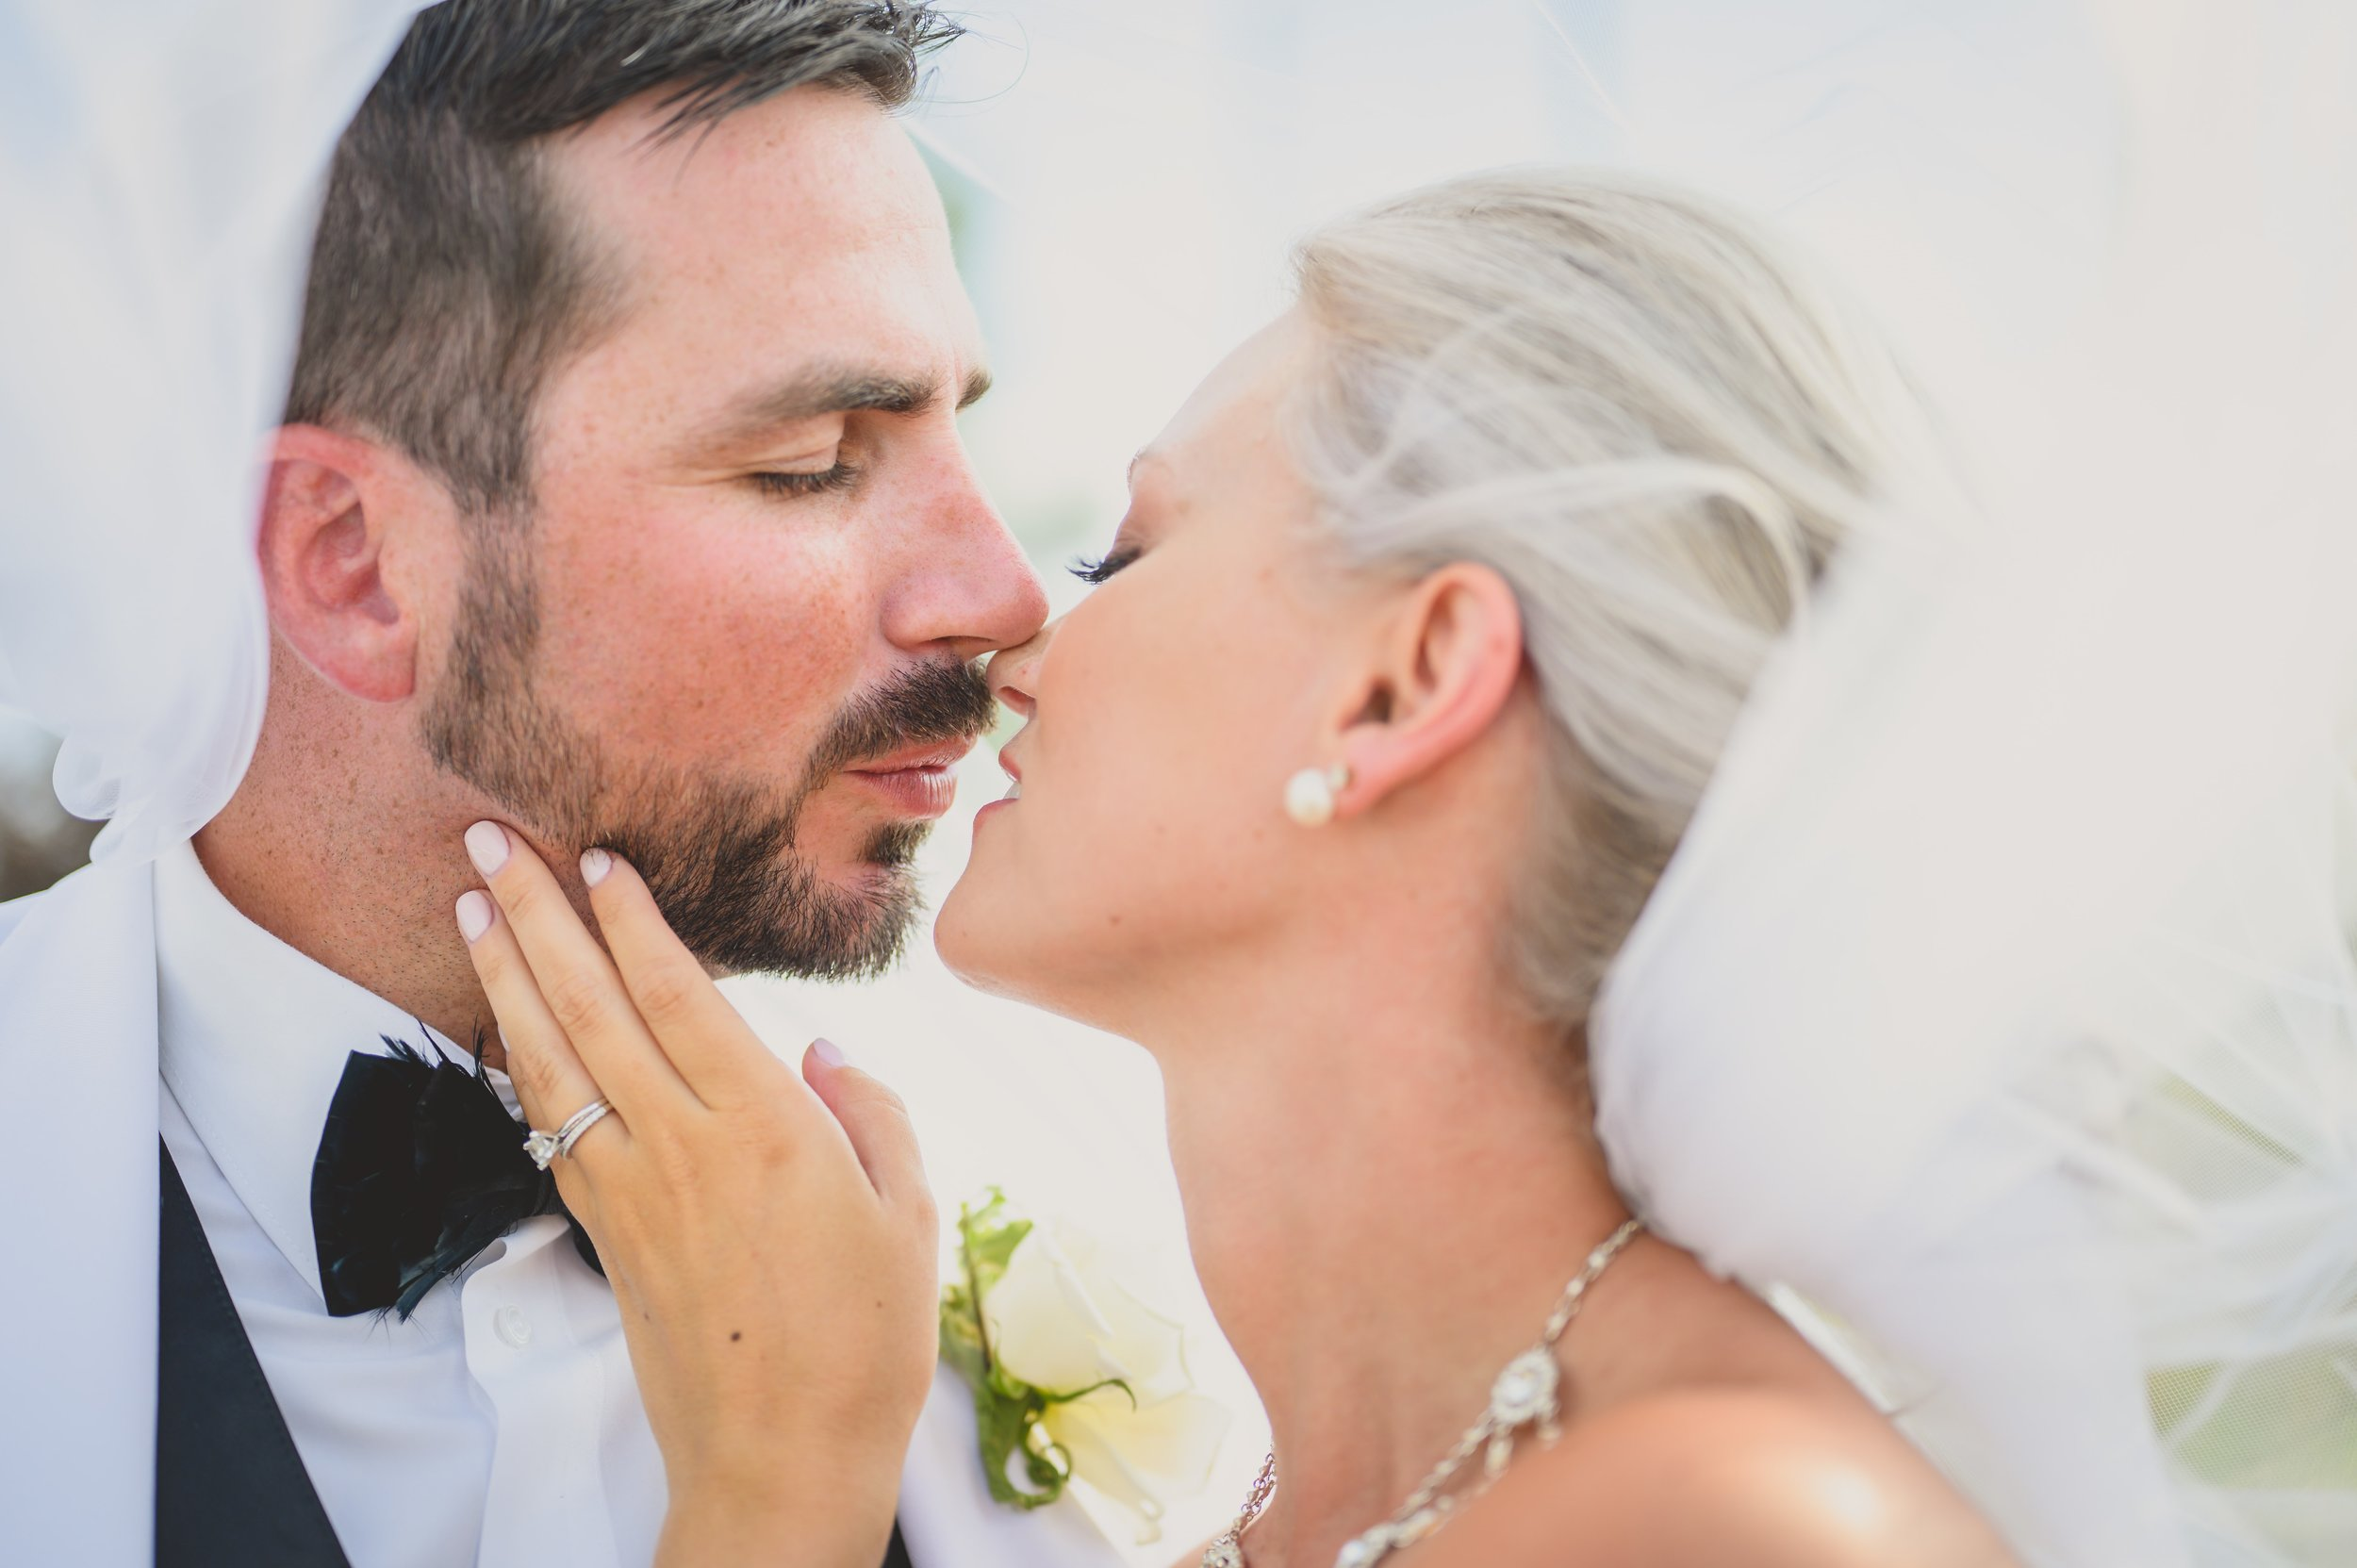 A groom and bride kissing under her wind blown veil.